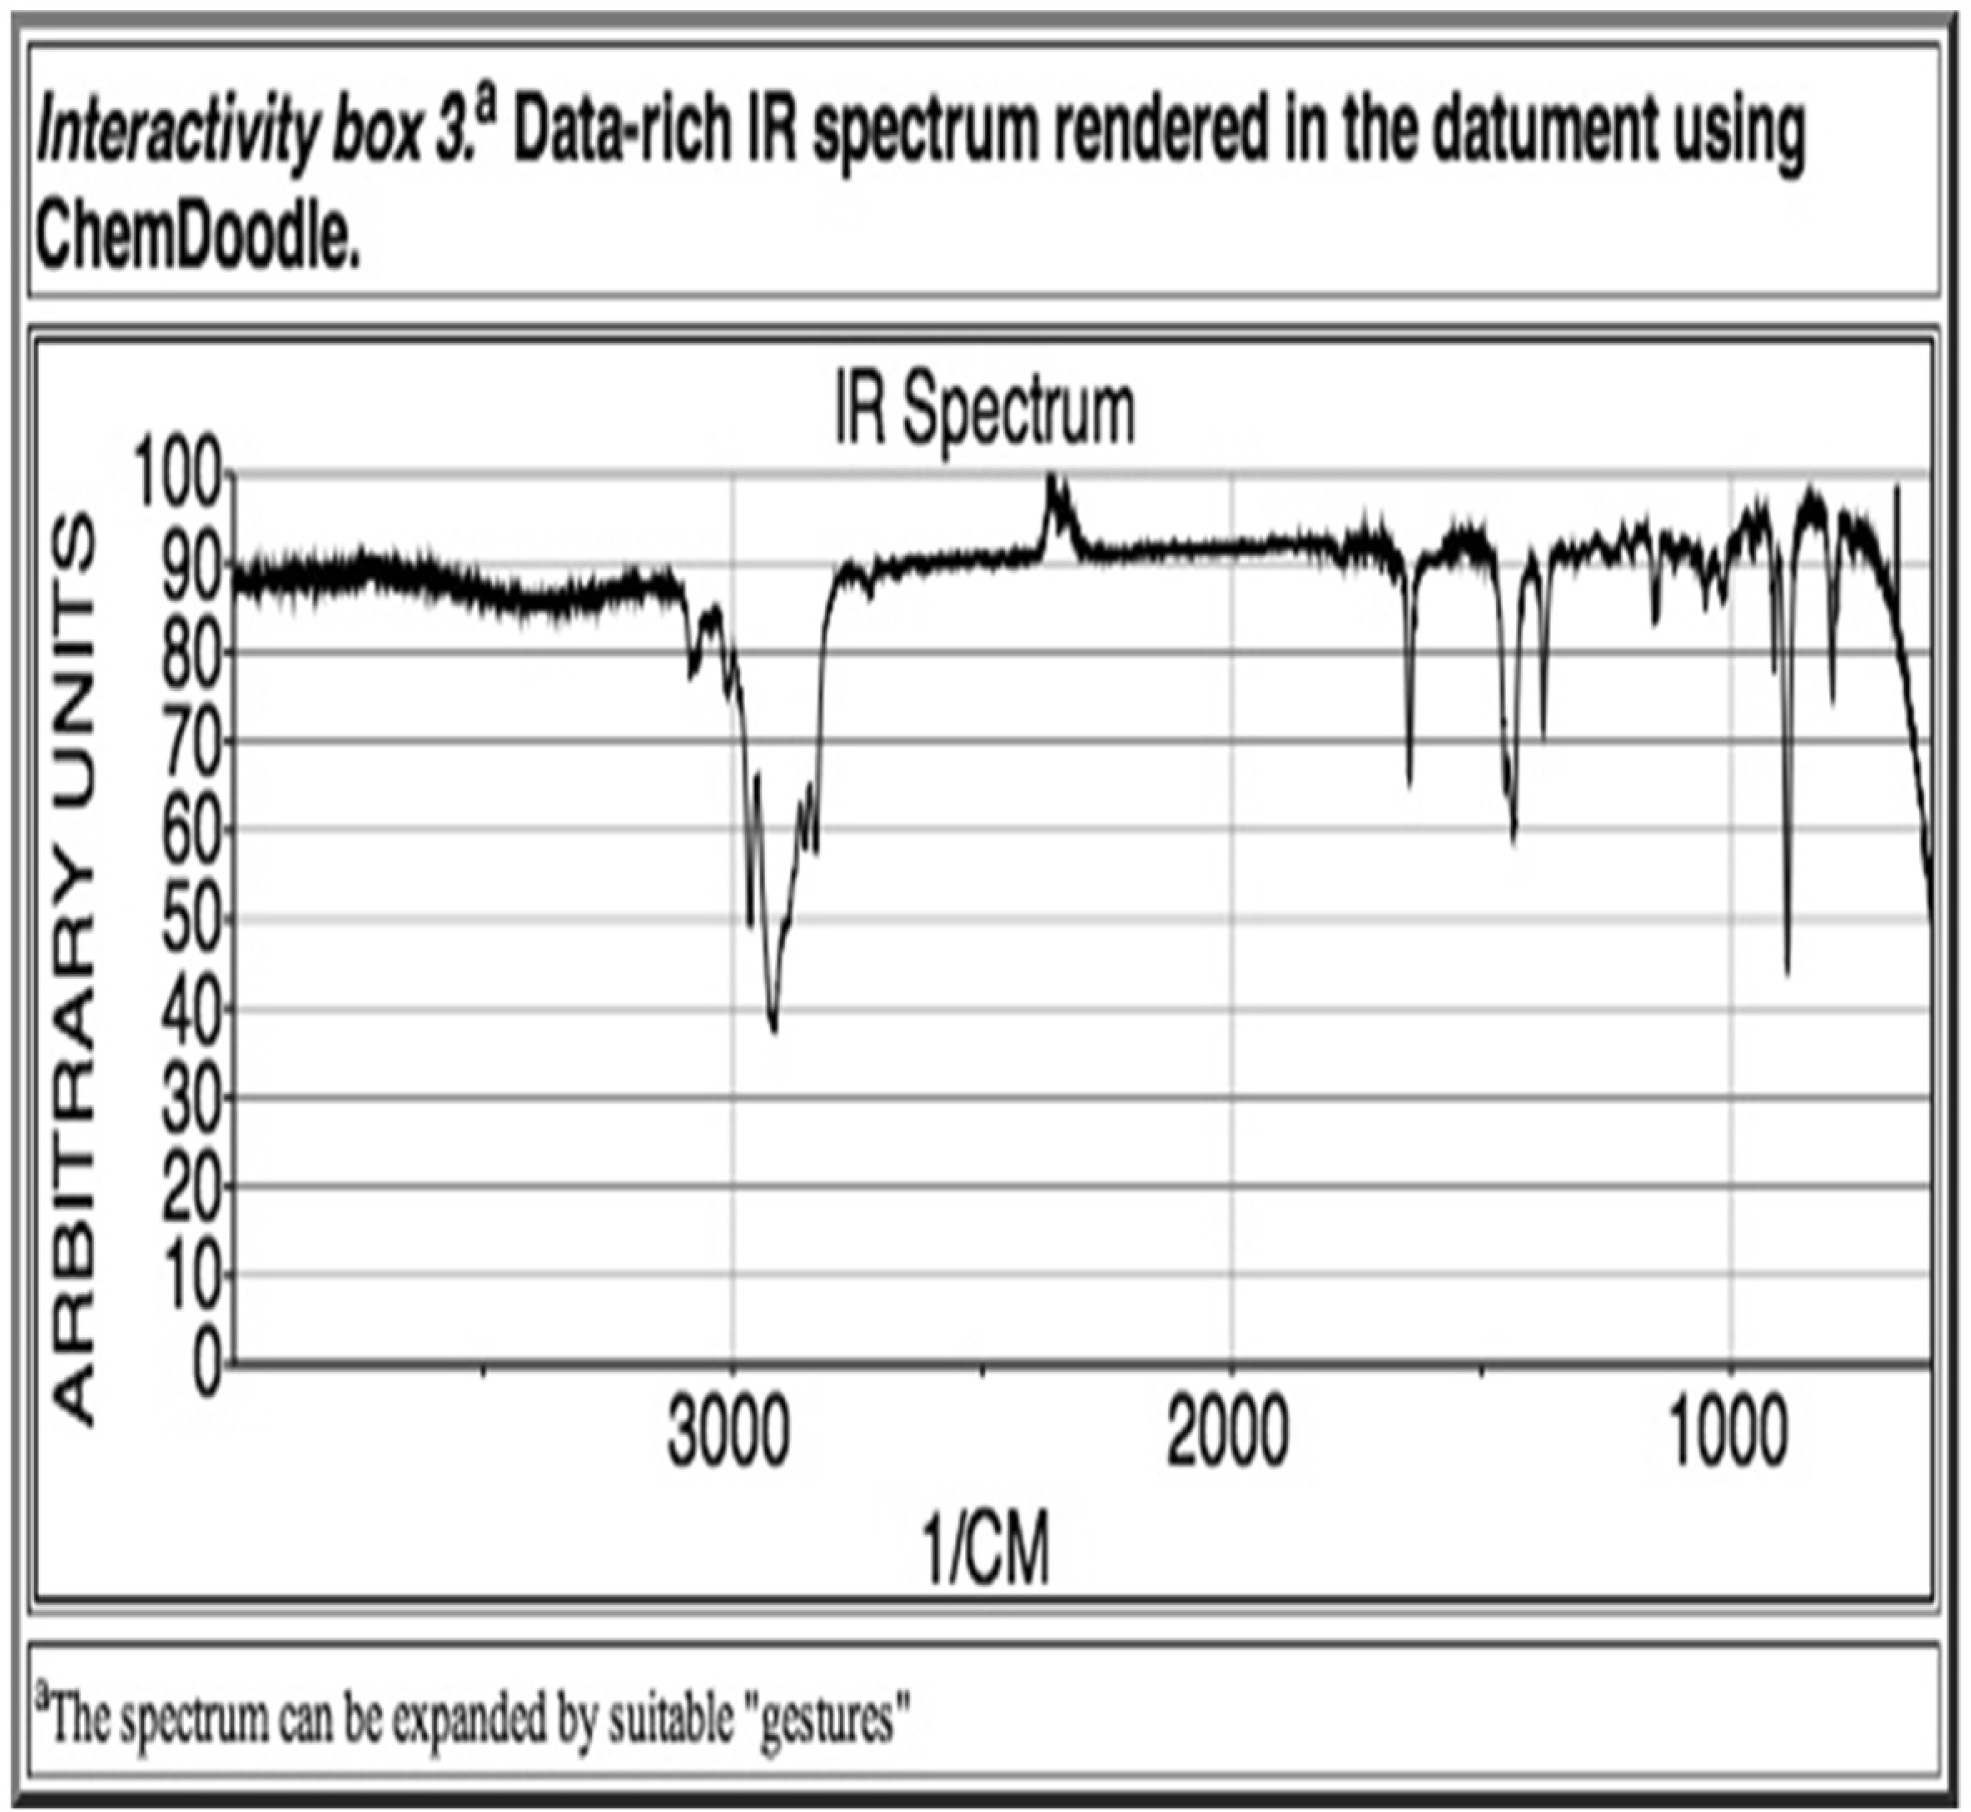 http://static-content.springer.com/image/art%3A10.1186%2F1758-2946-5-6/MediaObjects/13321_2012_Article_363_Fig7_HTML.jpg